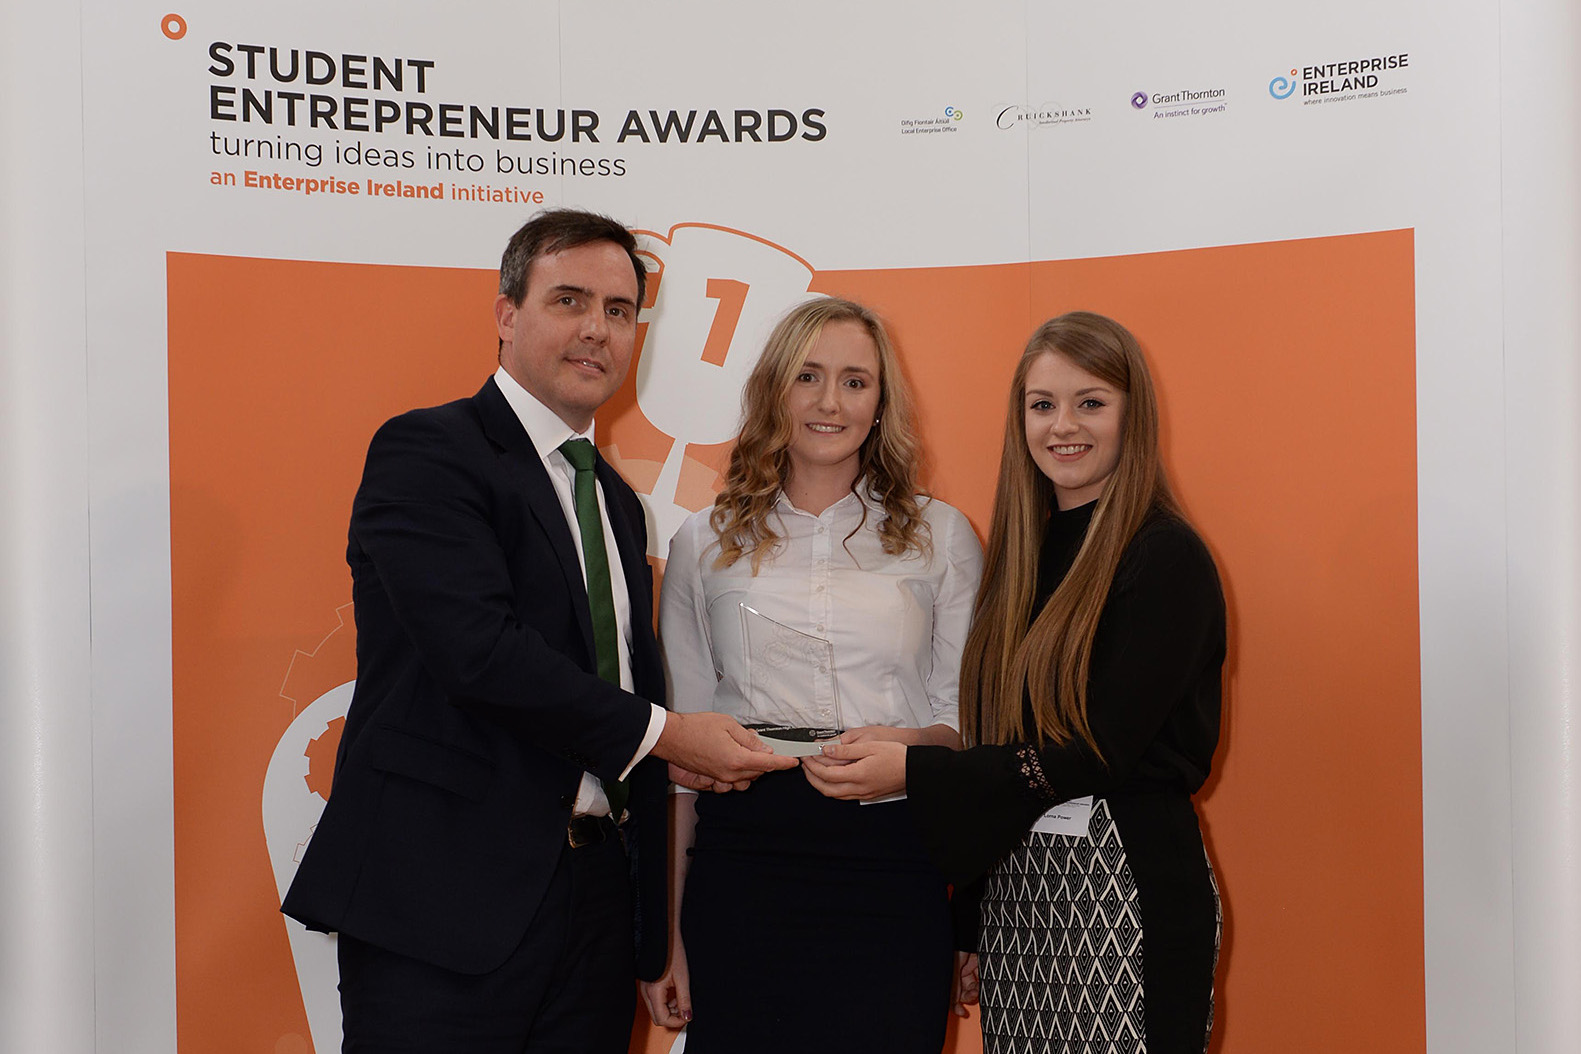 Pictured with Kevin Foley, Grant Thornton are Emma (centre) and Lorna (right)